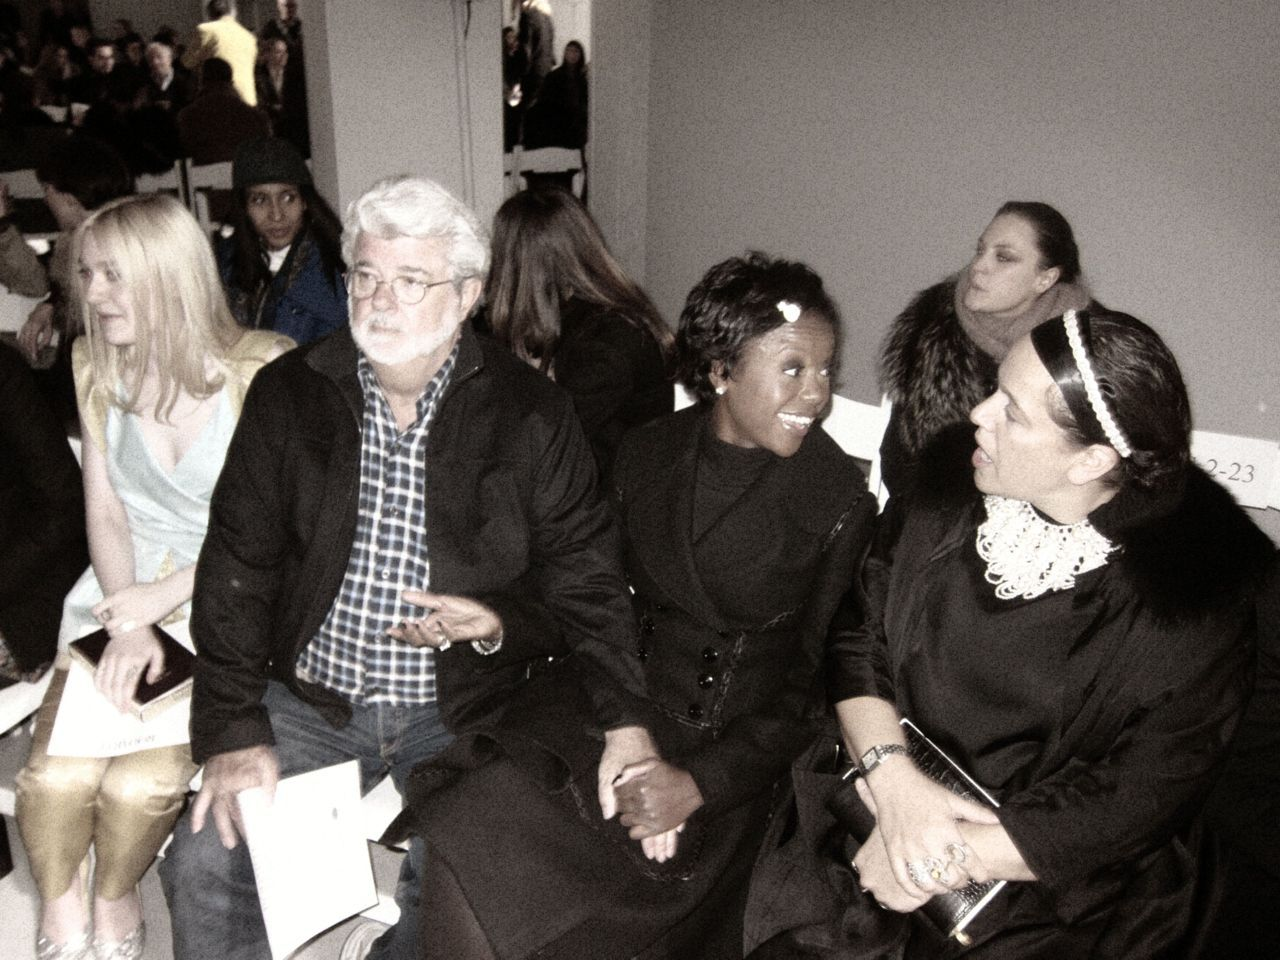 George FREAKIN' Lucas (!) at today's Rodarte show with his wife Melody, Dakota Fanning, and Michelle Obama's right styling hand Ikram Goldman.